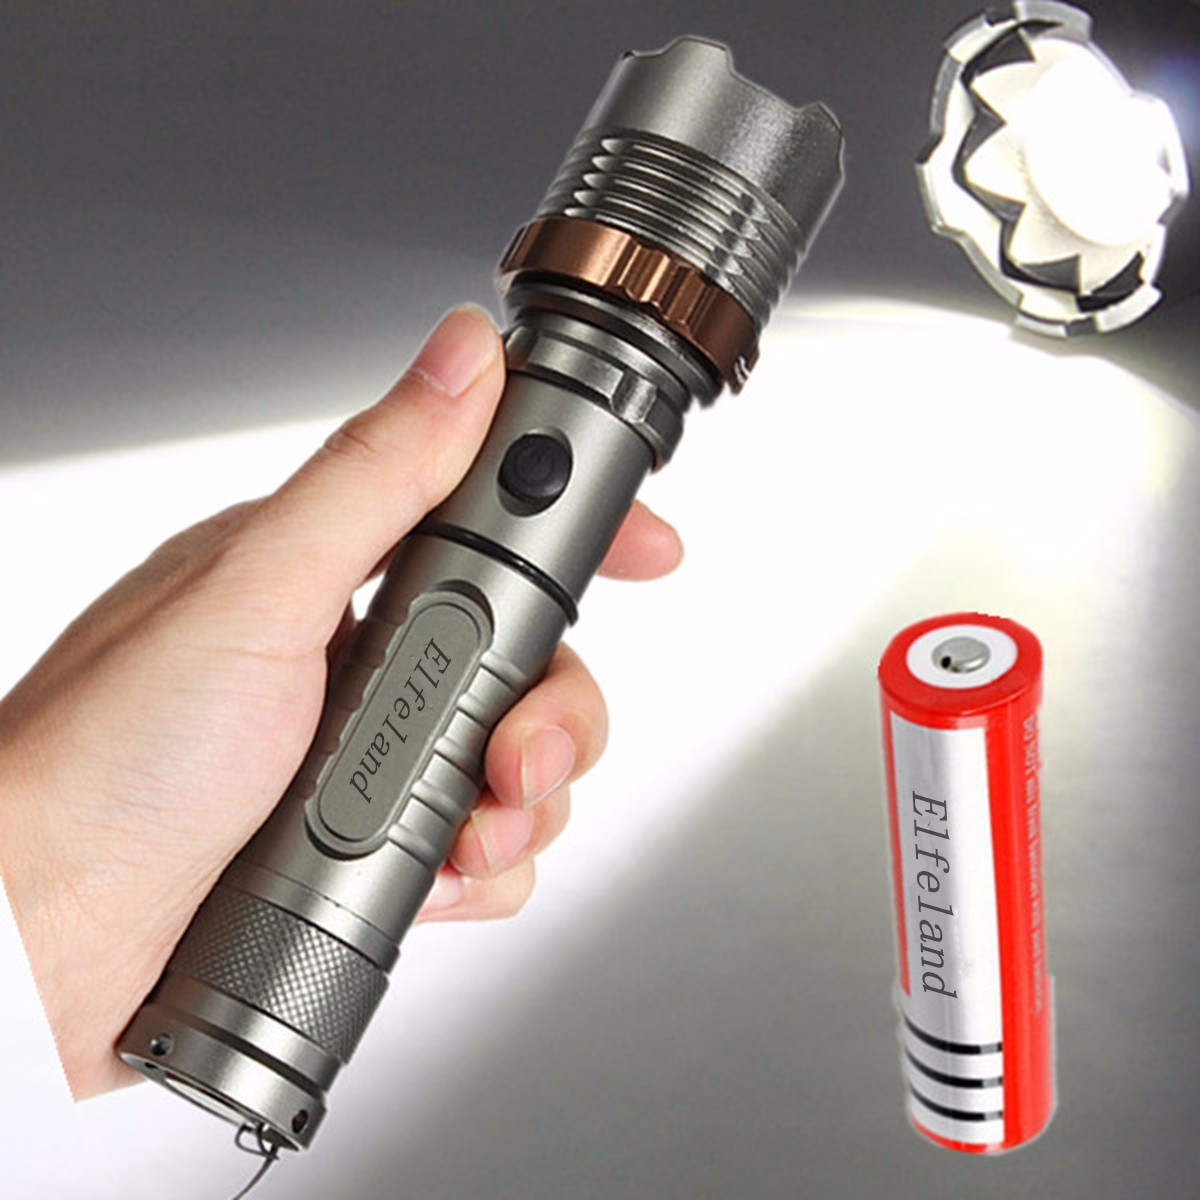 2600 Lumens T6 LED Flashlight Zoomable Focus Torch Lamp Super Bright + 18650 Rechargeable Battery for Camping Hiking Cycling